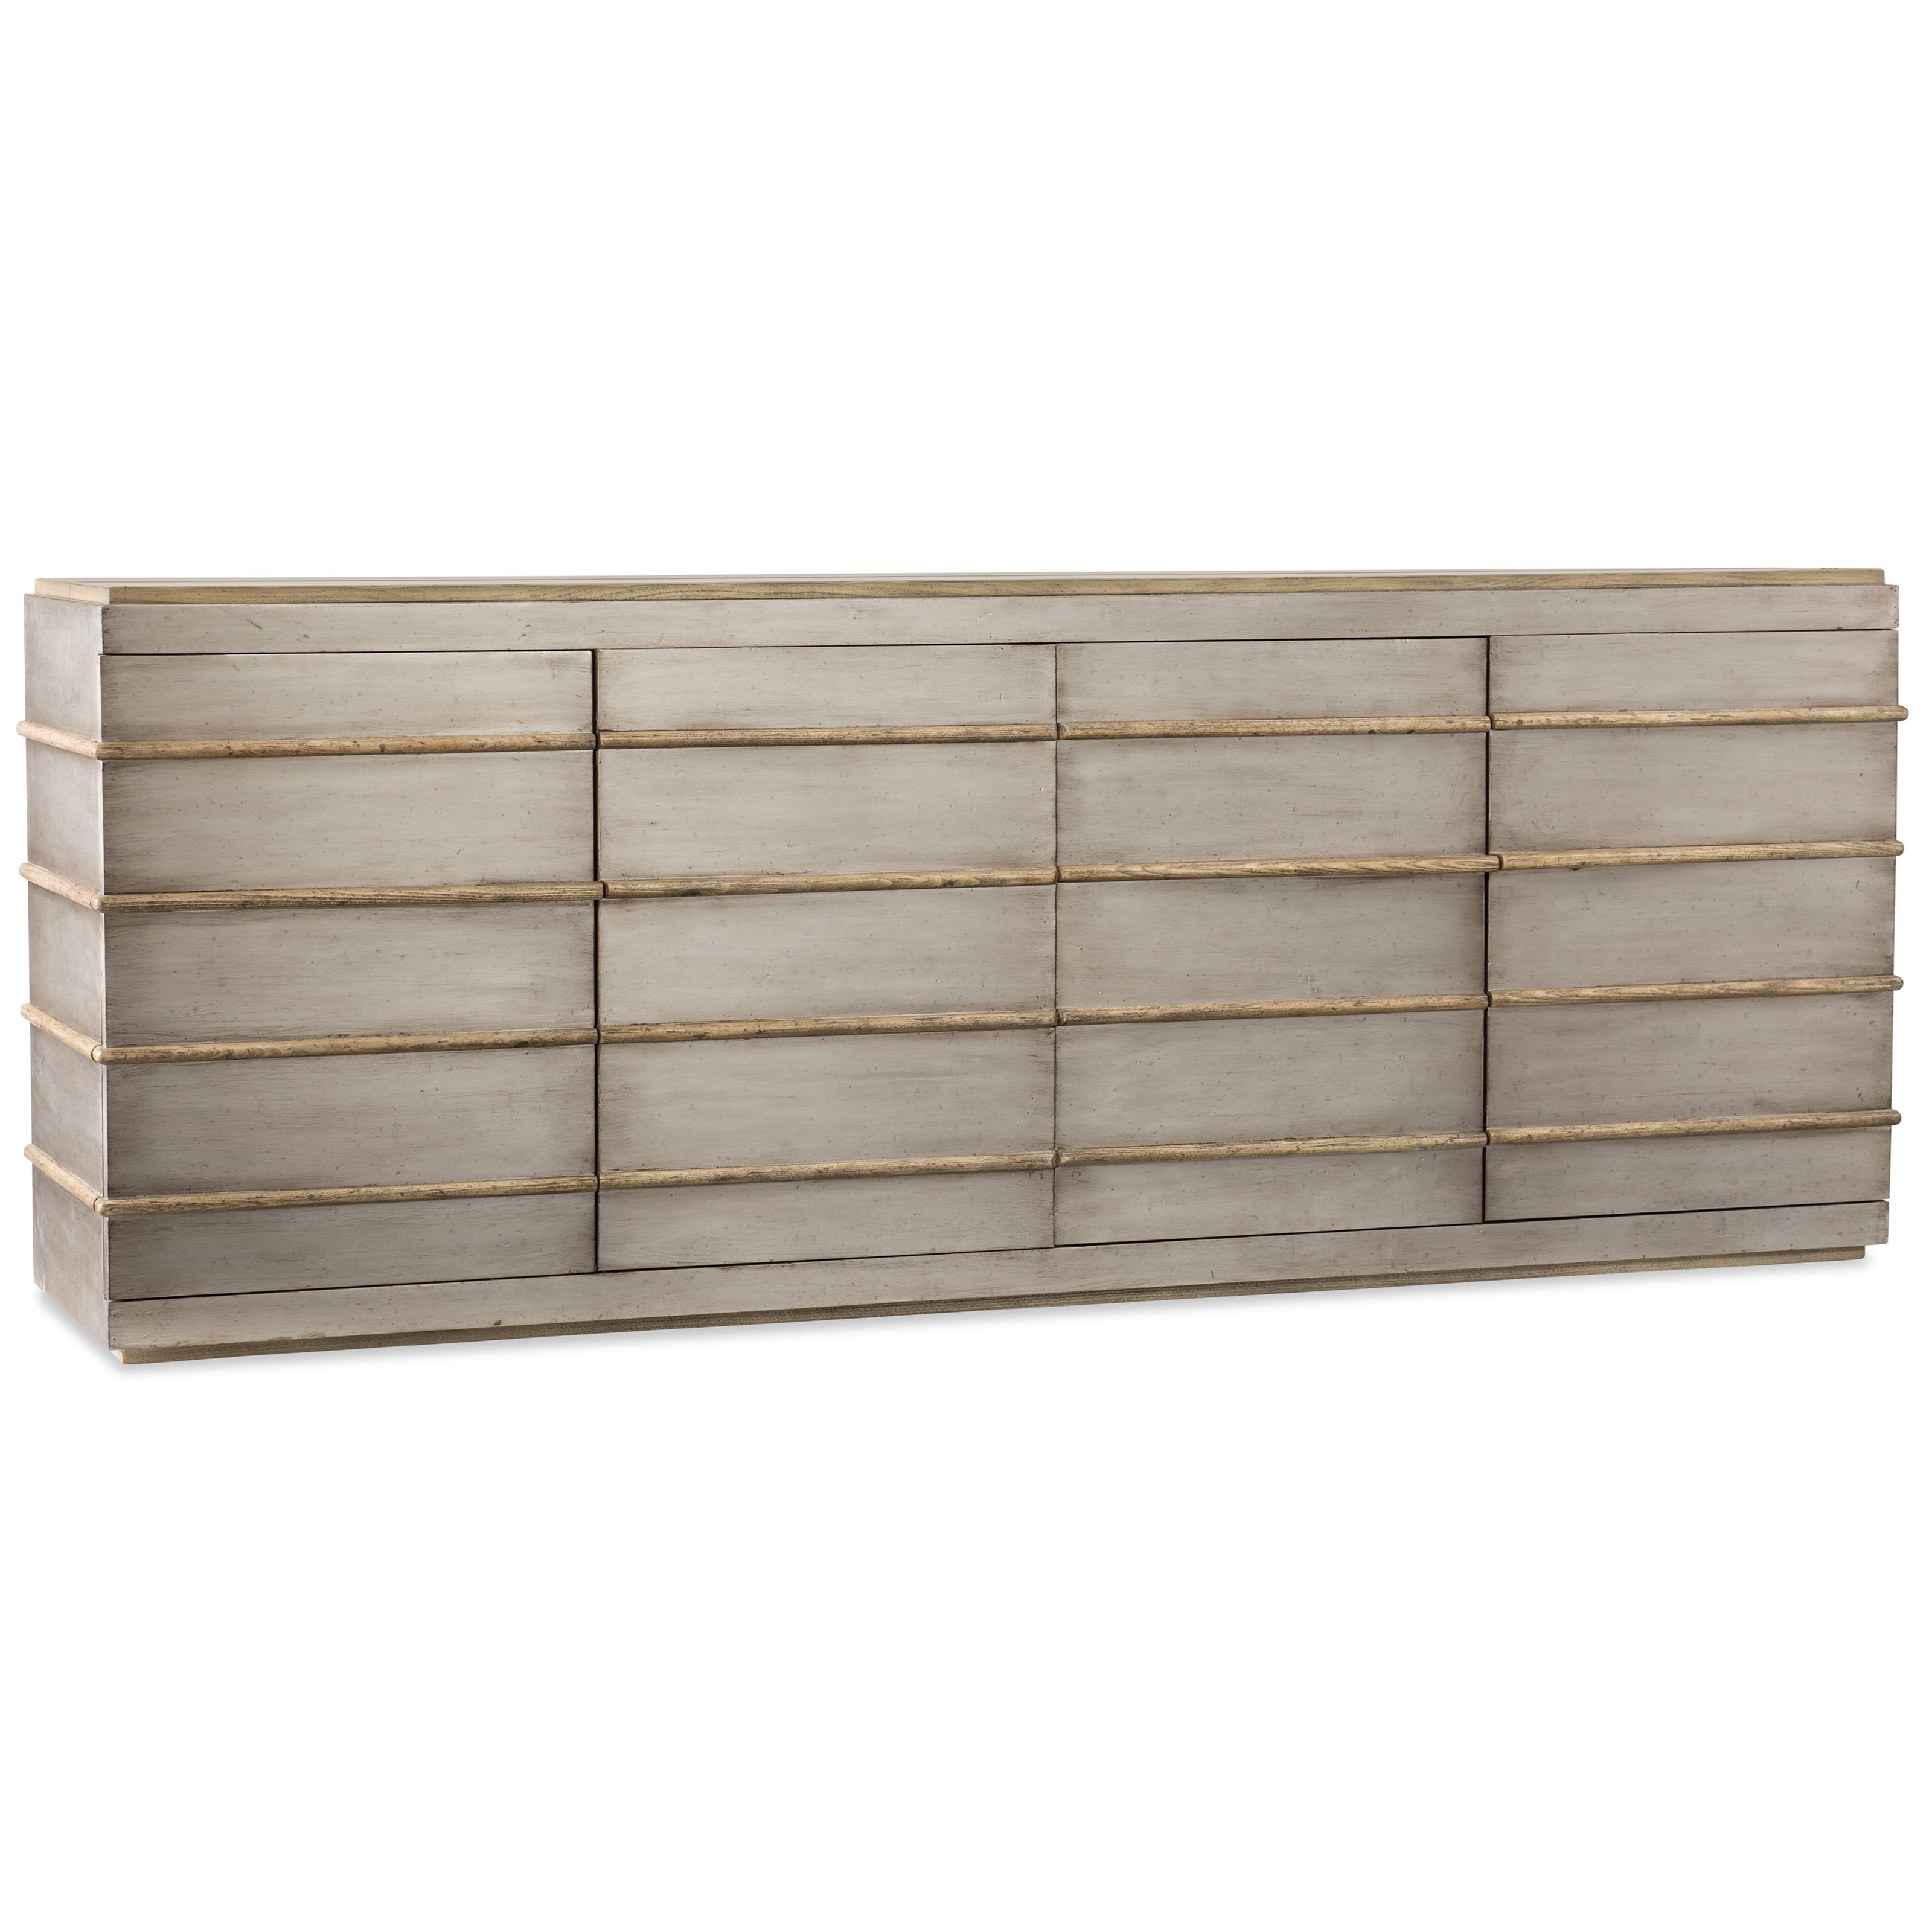 Hooker Furniture American Life-Urban Elevation Metal Entertainment Credenza - Item Number: 1620-55484-LTBR